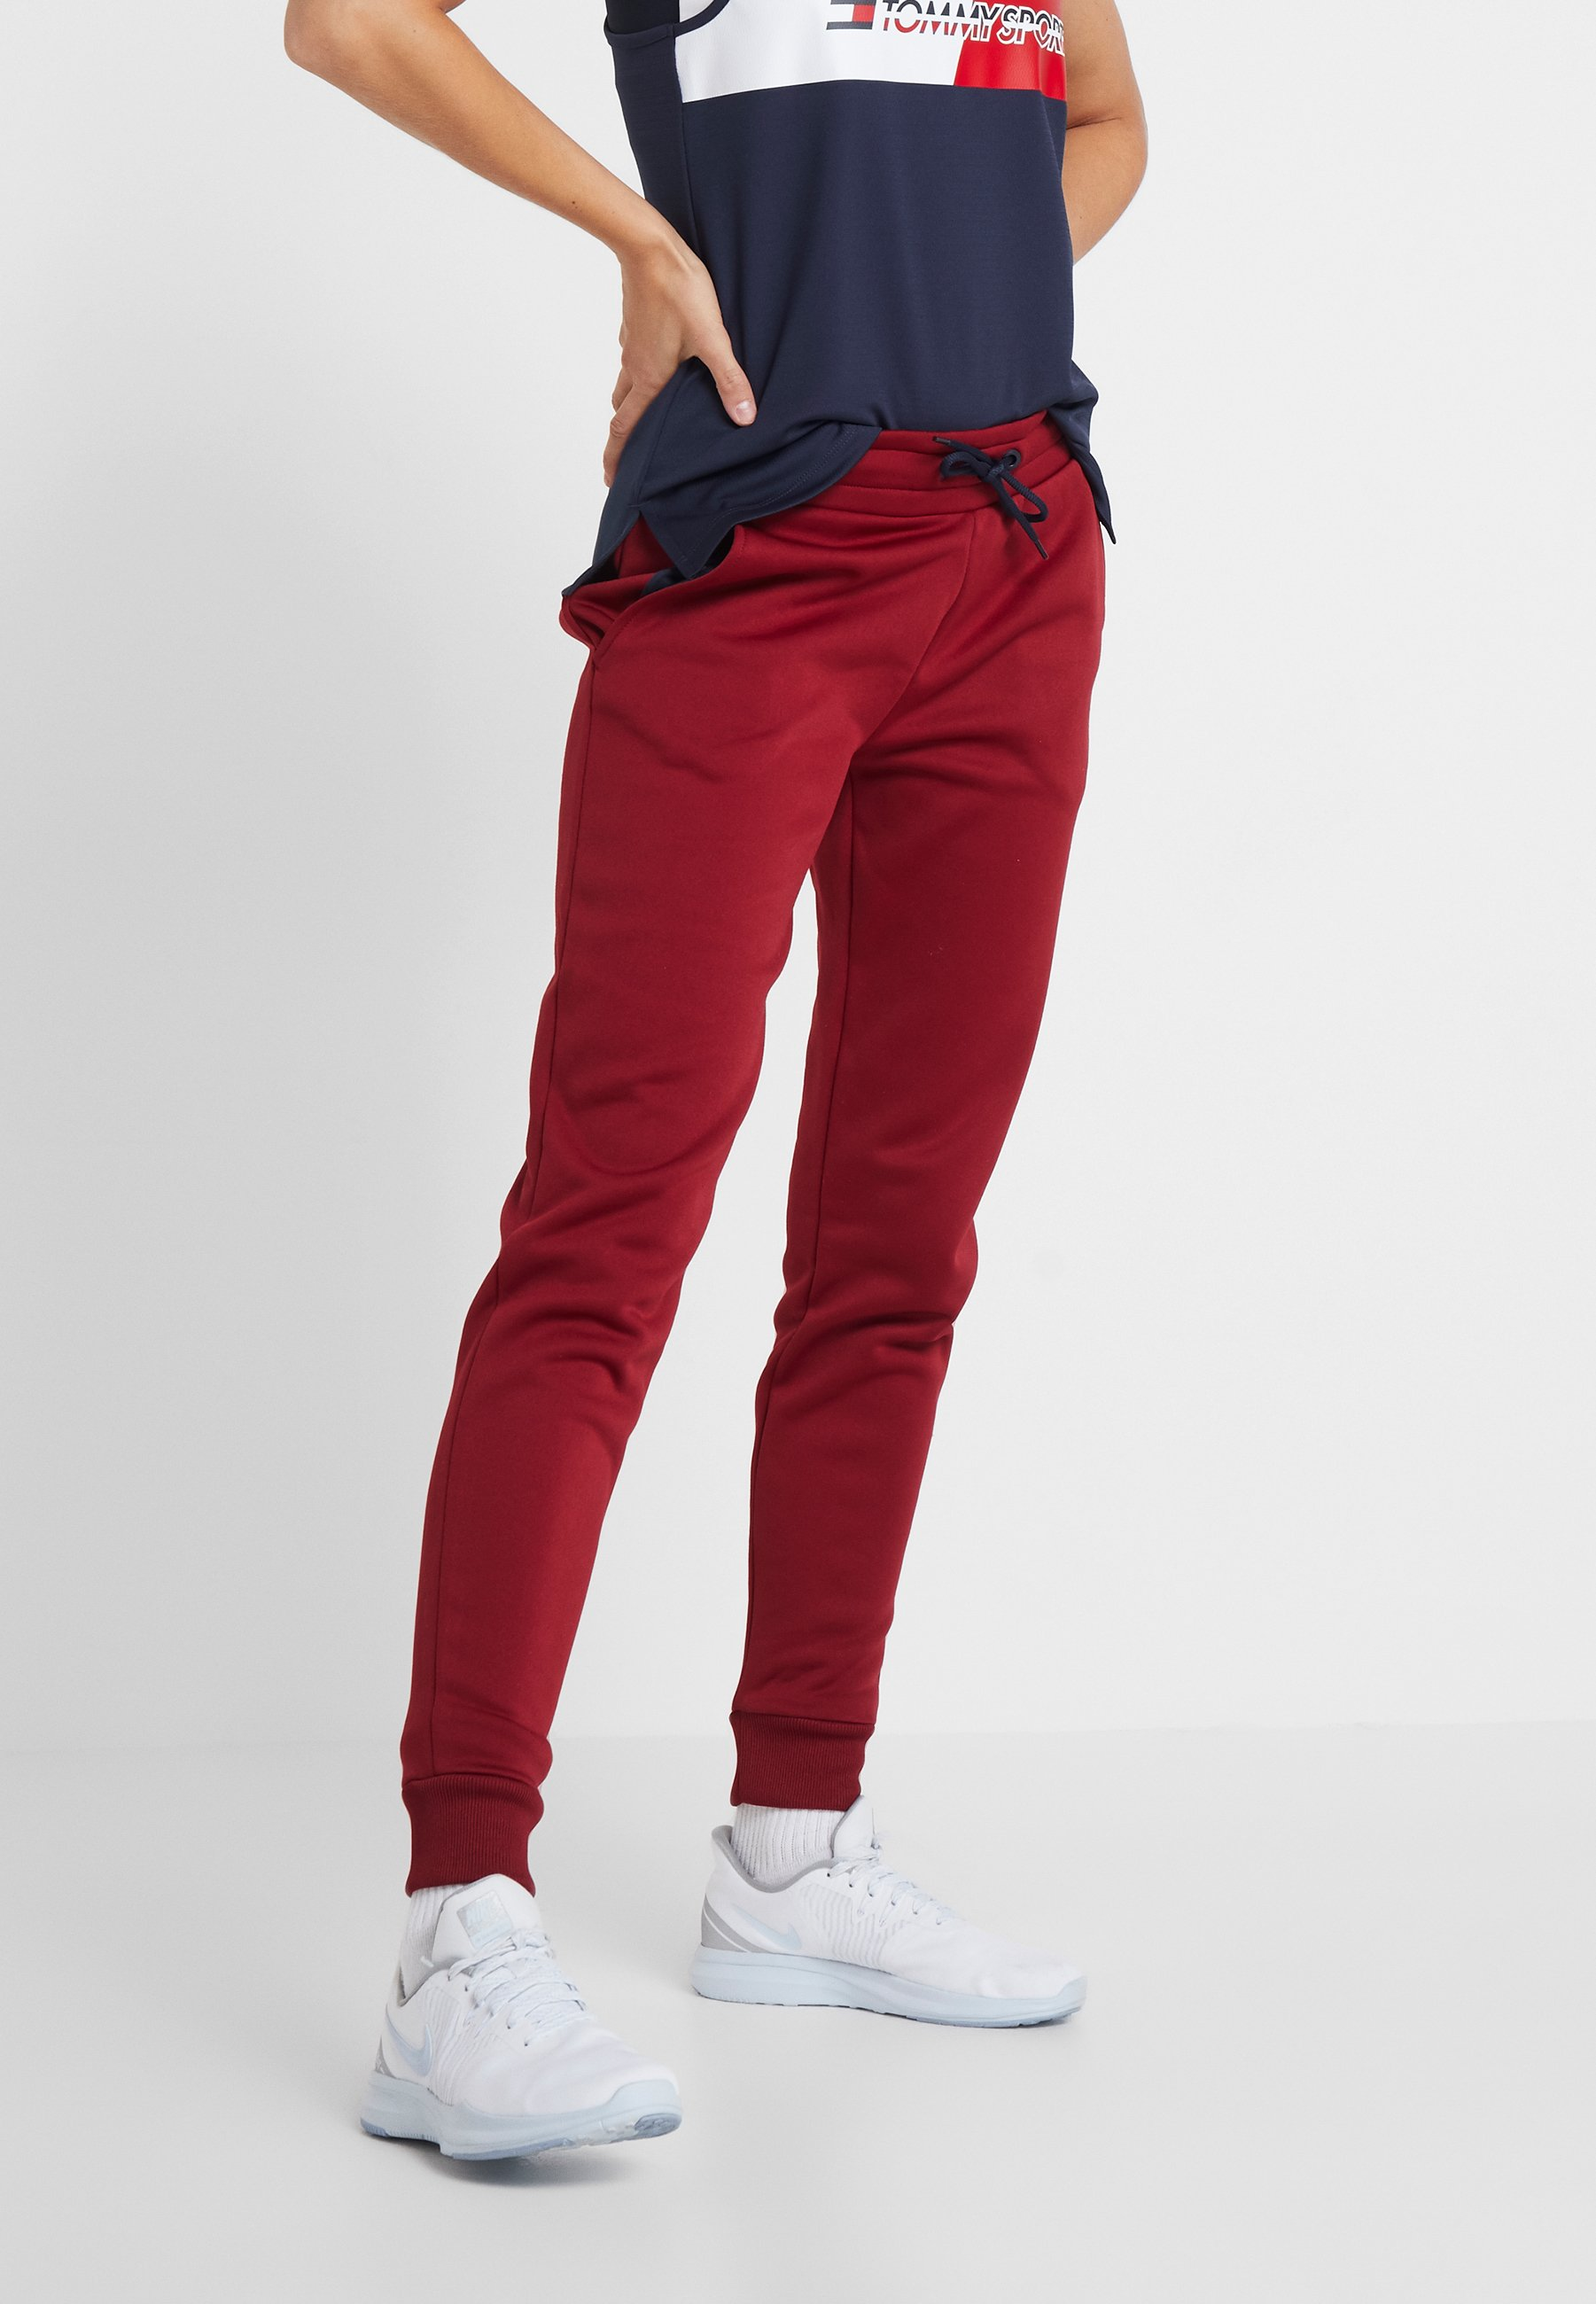 Red Survêtement Tommy De Big Sport LogoPantalon JulF1KcT3